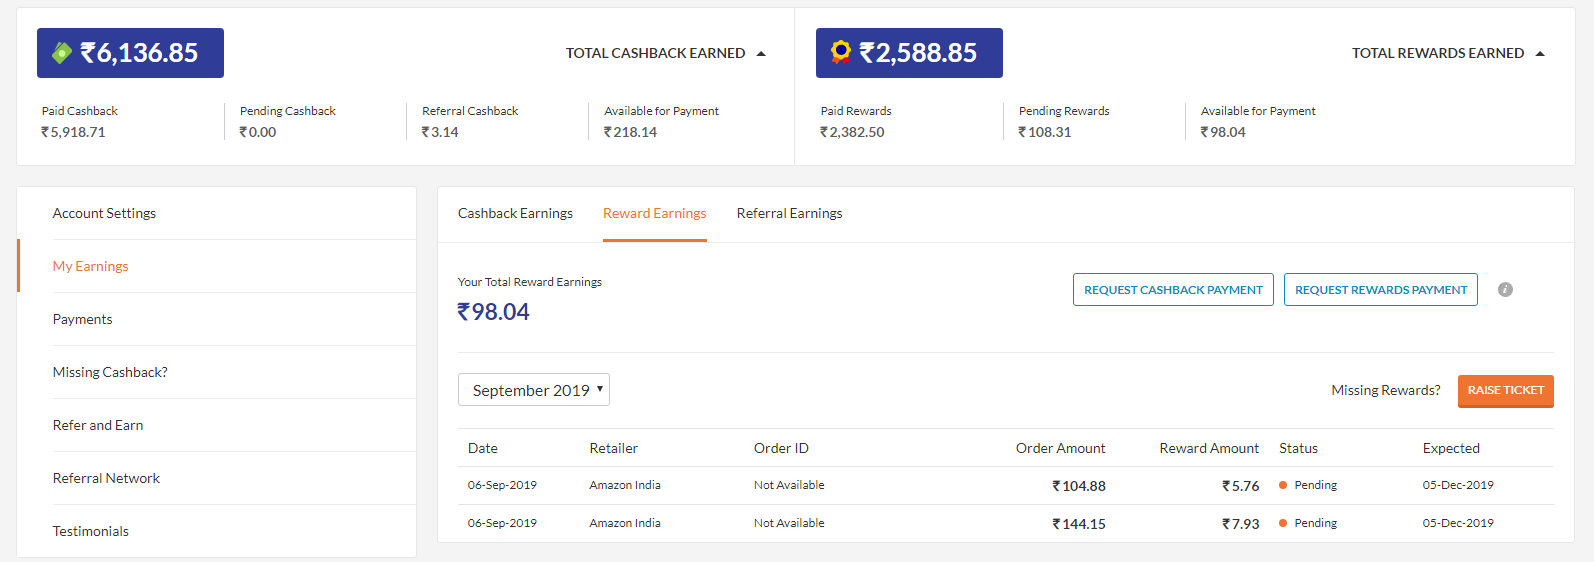 Cashkaro Earning Cashback proof